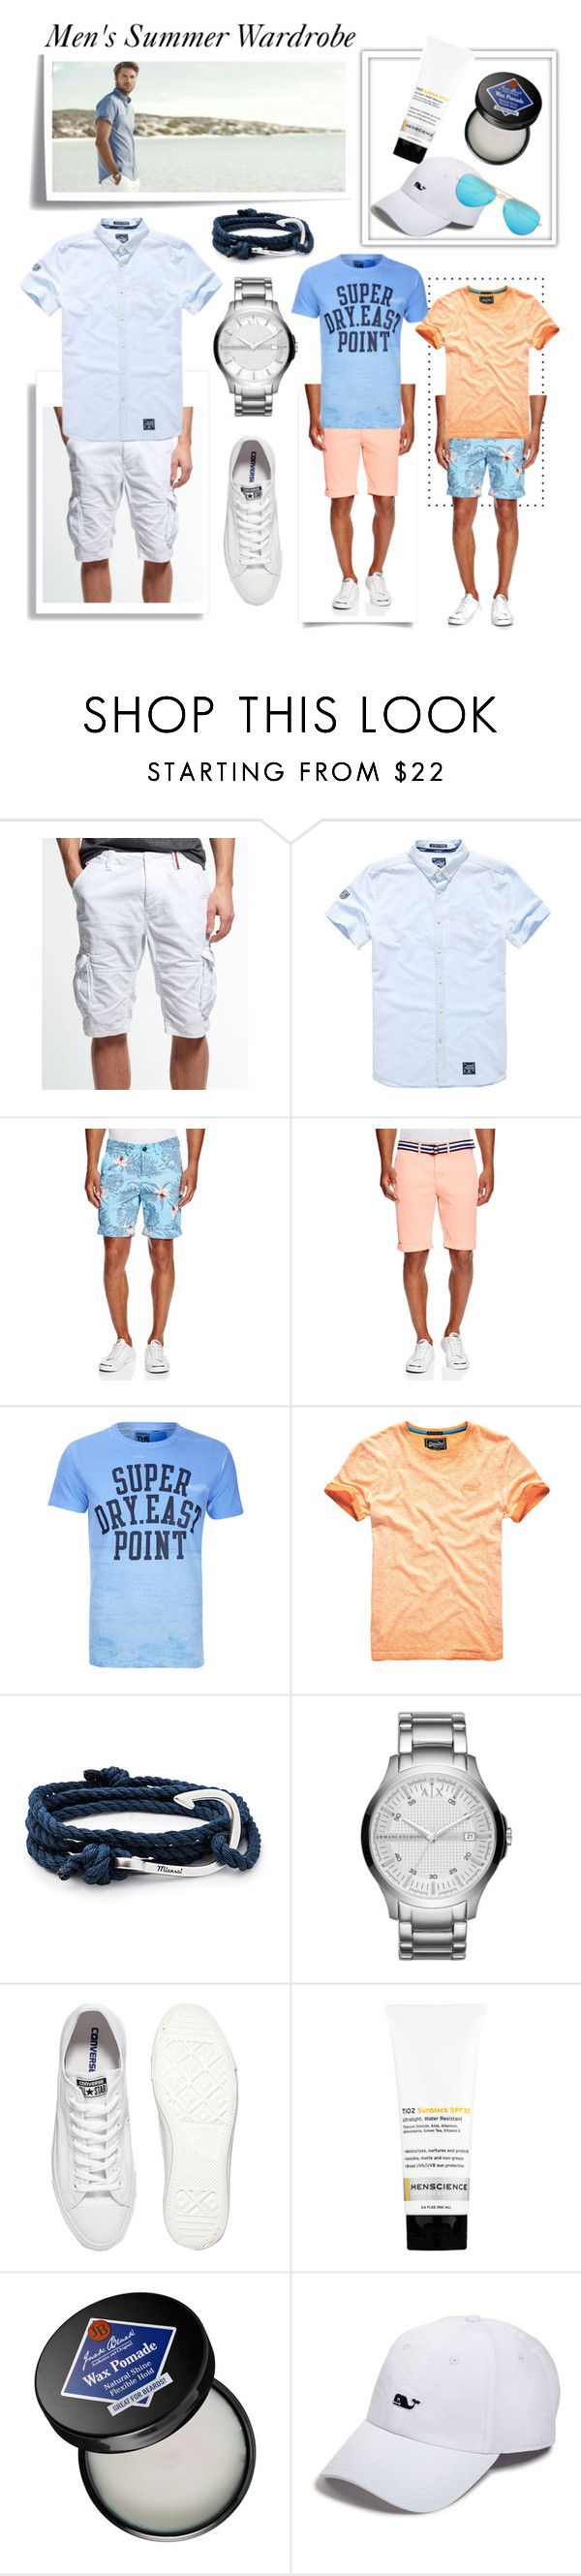 """Santa Cruz Beach Boardwalk Outfits"" by wind-chasing ❤ liked on Polyvore featuring Post-It, Superdry, MIANSAI, Armani Exchange, Converse, Menscience, Jack Black, Vineyard Vines, Ray-Ban and men's fashion"